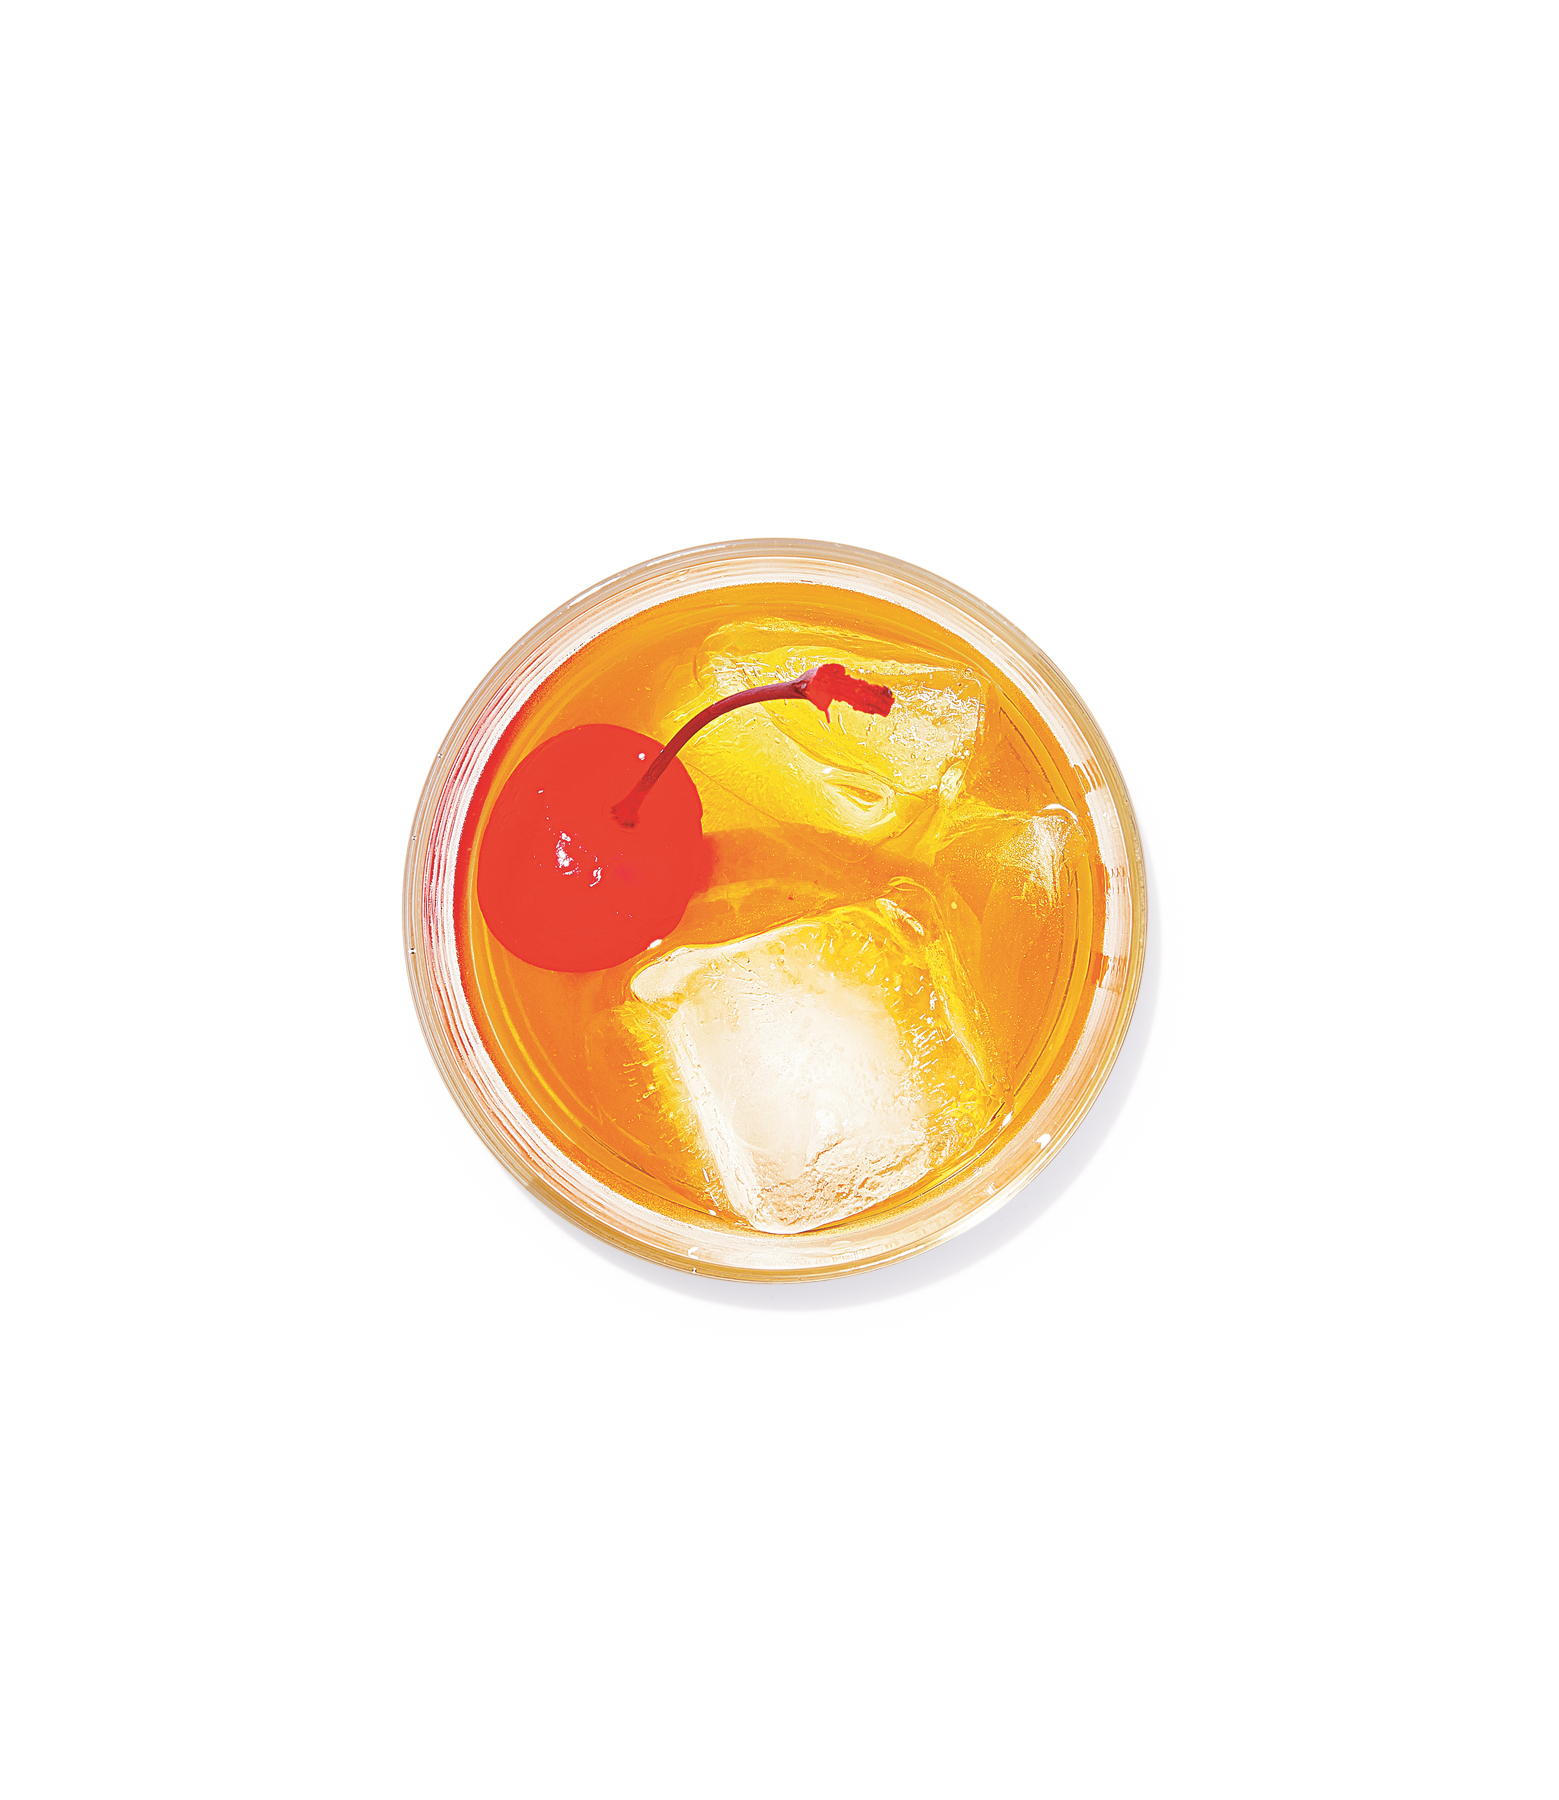 clementine-ginger-old-fashioned-cocktail